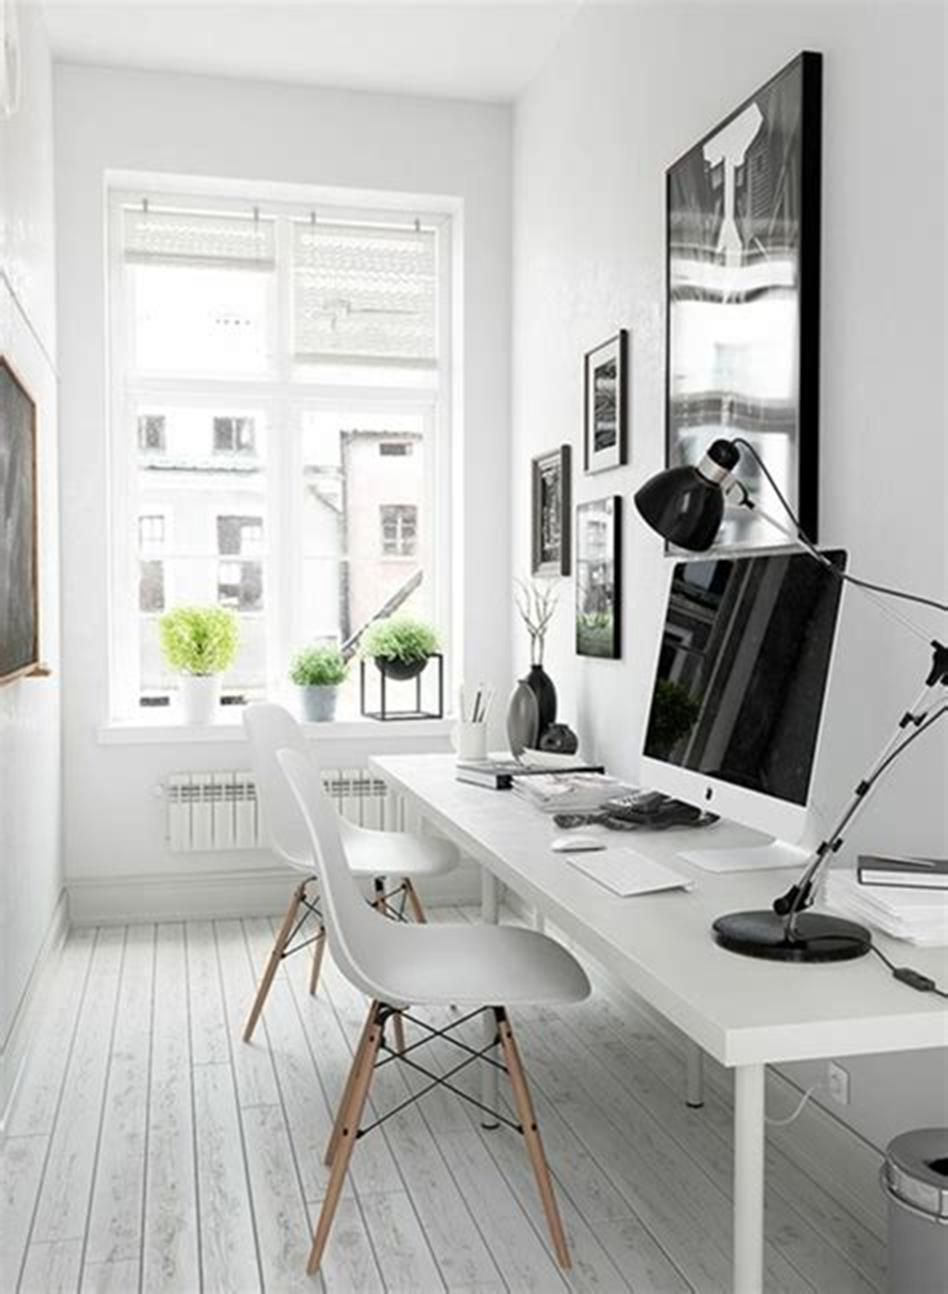 48 Best Small Home Office Design And Decorating Ideas Small Office Design Home Office Design Office Interior Design